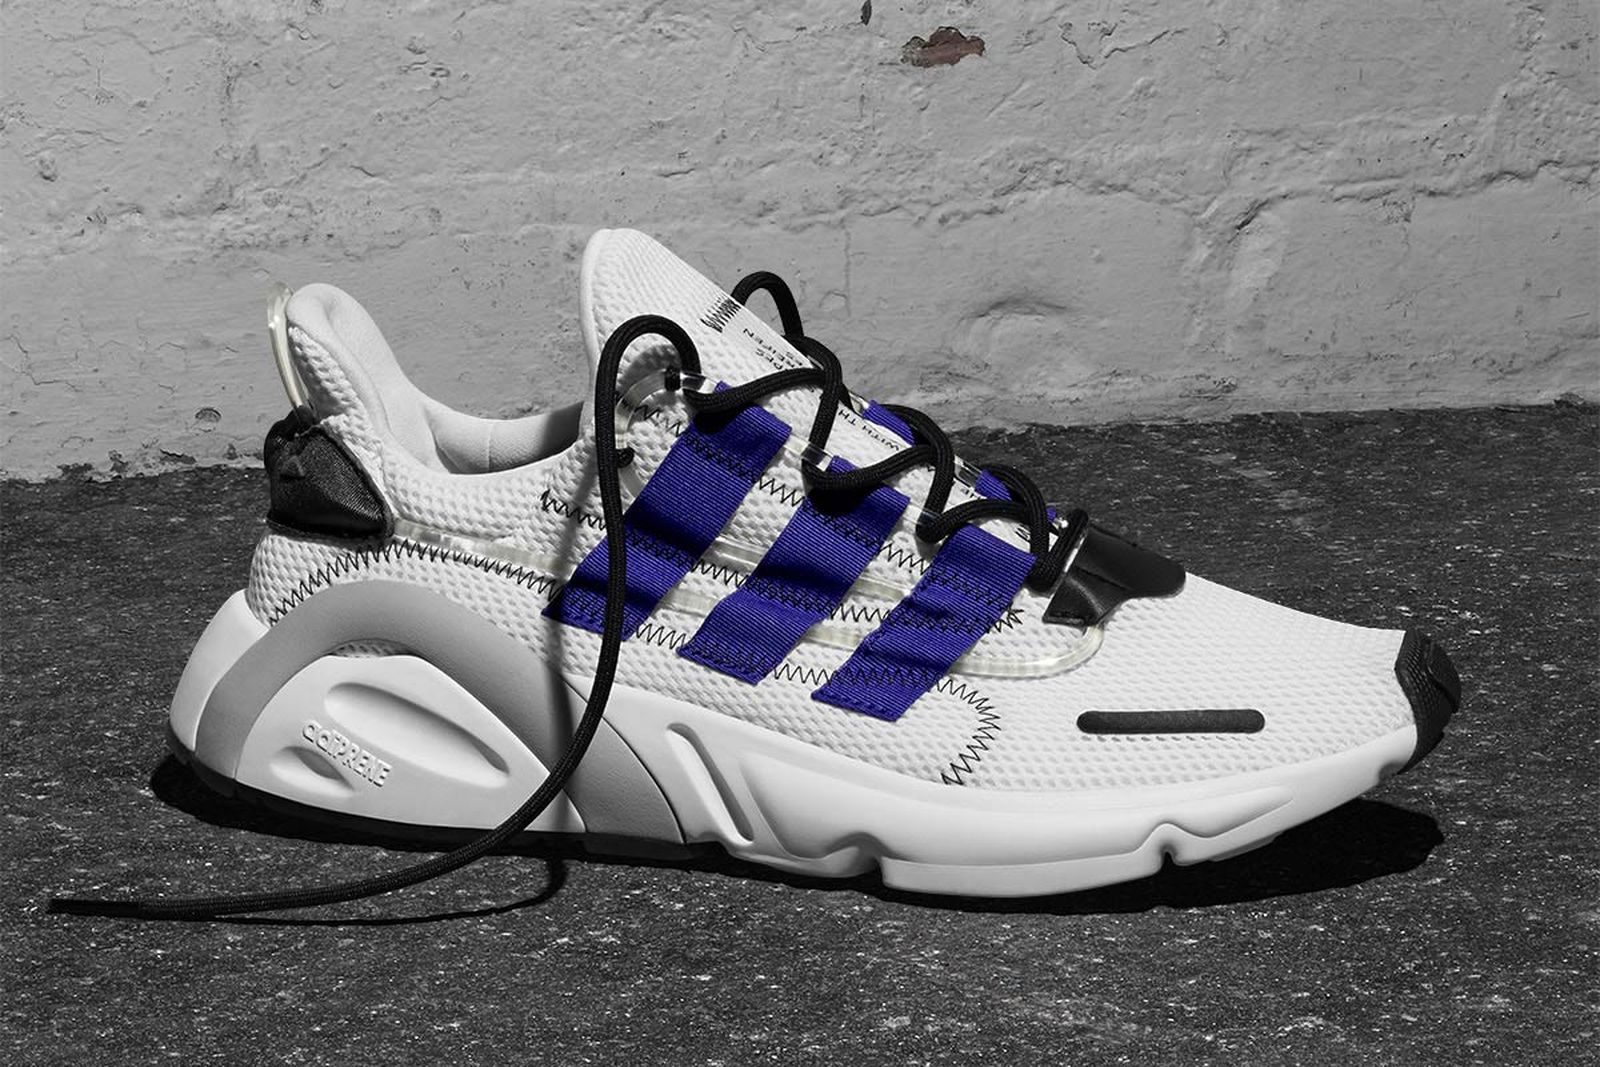 adidas originals lexicon future release date price info official campaign